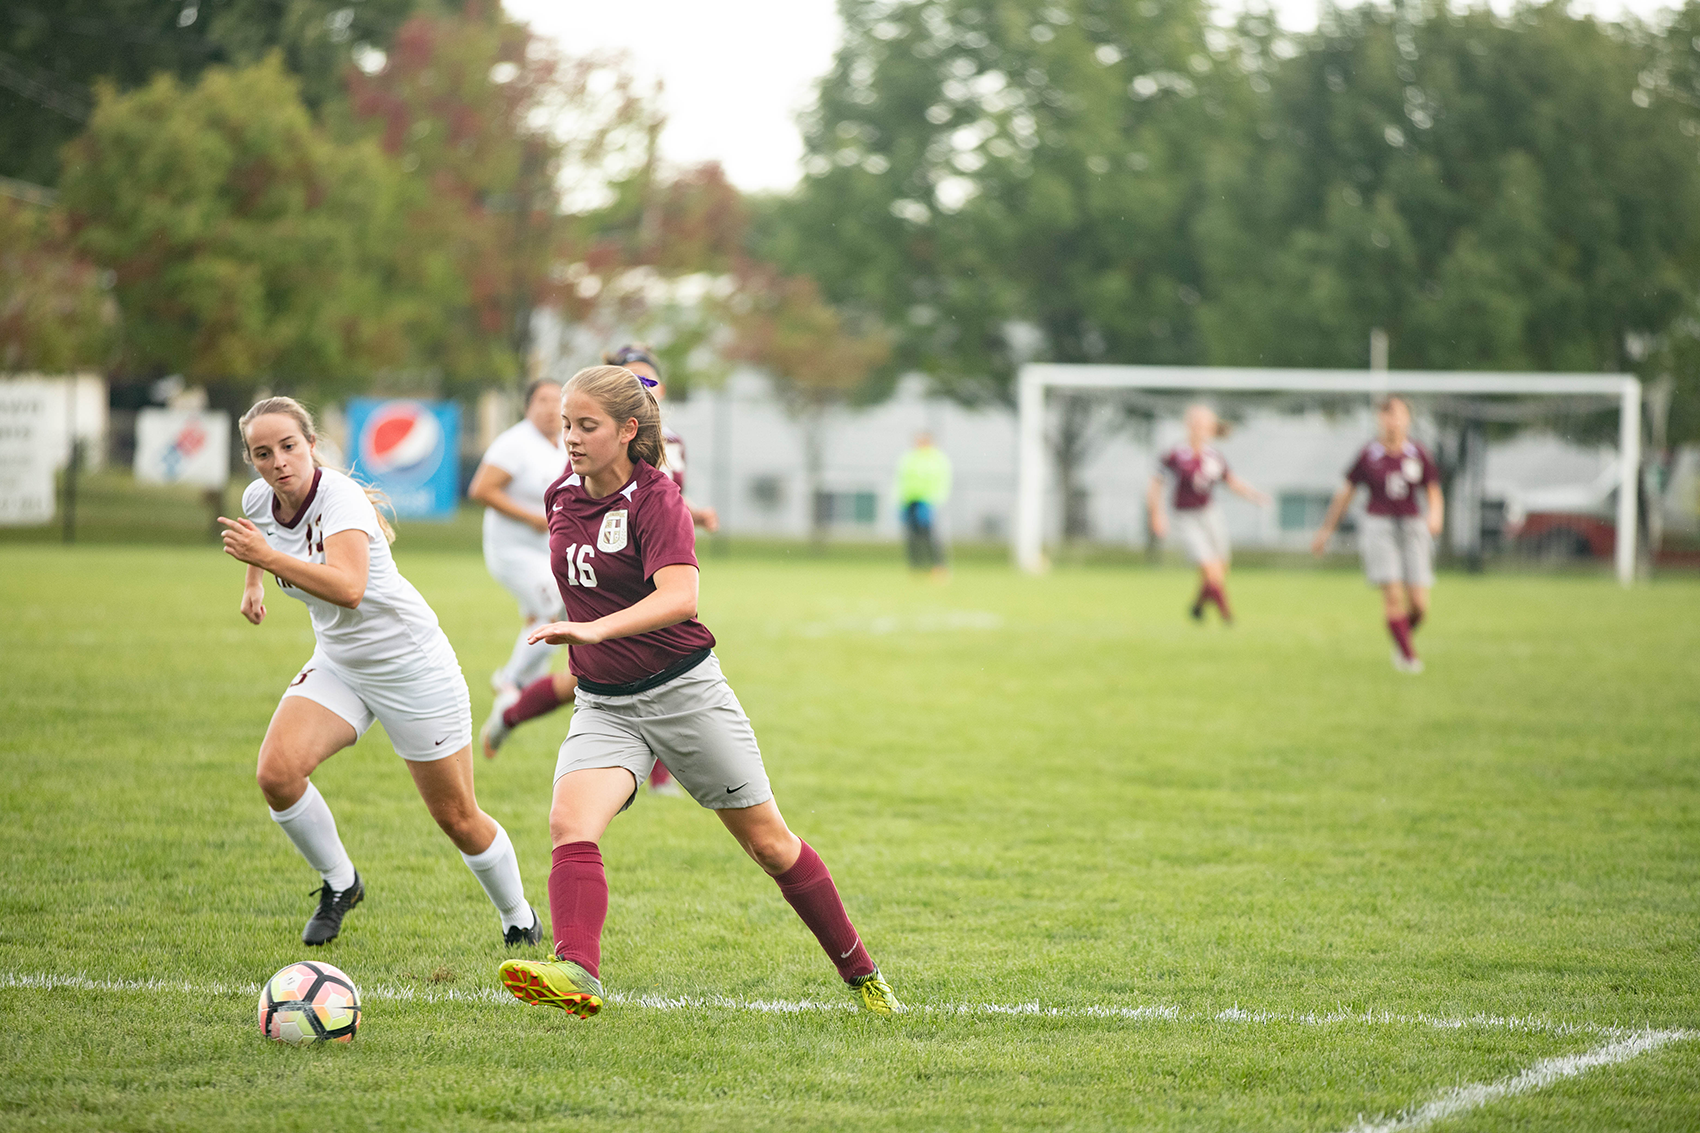 Abigail Speichinger scored a hat trick for the Eagles in a 10-1 win over Iowa Wesleyan. Photo Credit: Brittany Appell